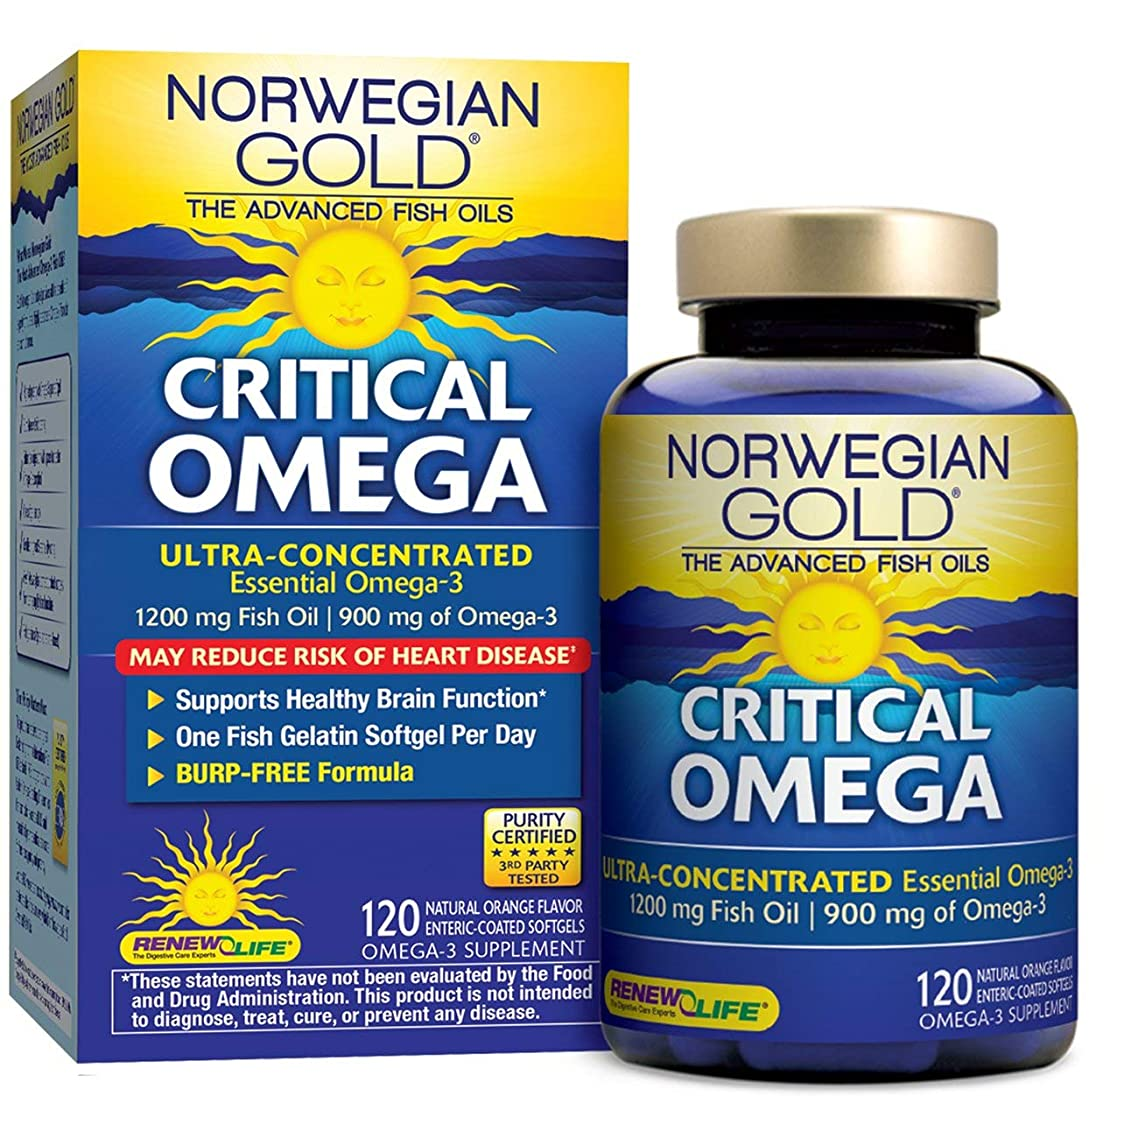 Renew Life Norwegian Gold Adult Fish Oil - Critical Omega, Fish Oil Omega 3 Supplement - 120 Burp-Free Softgel Capsules (Packaging May Vary)